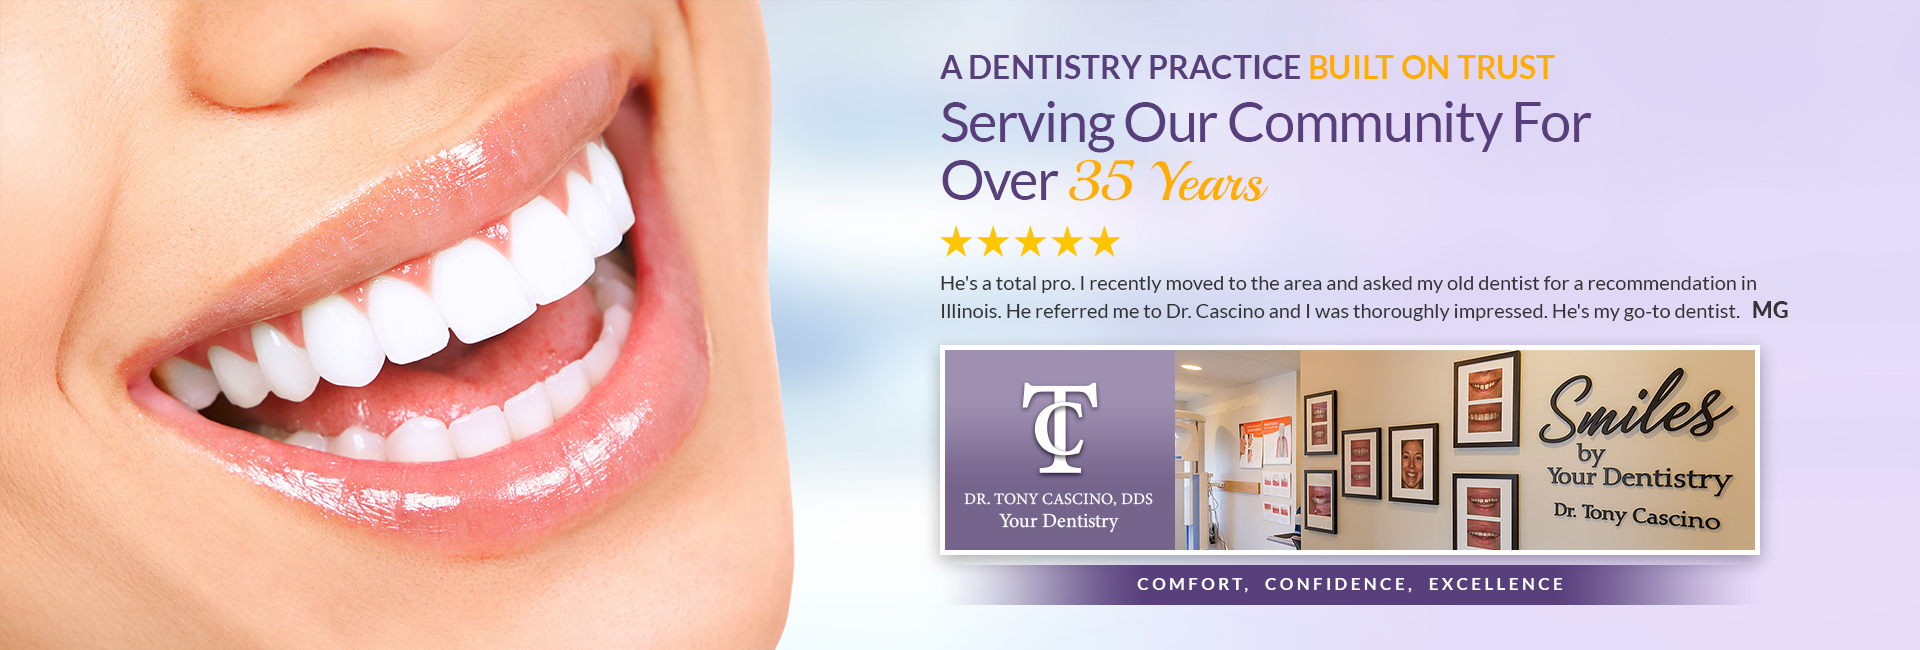 your dentistry logo